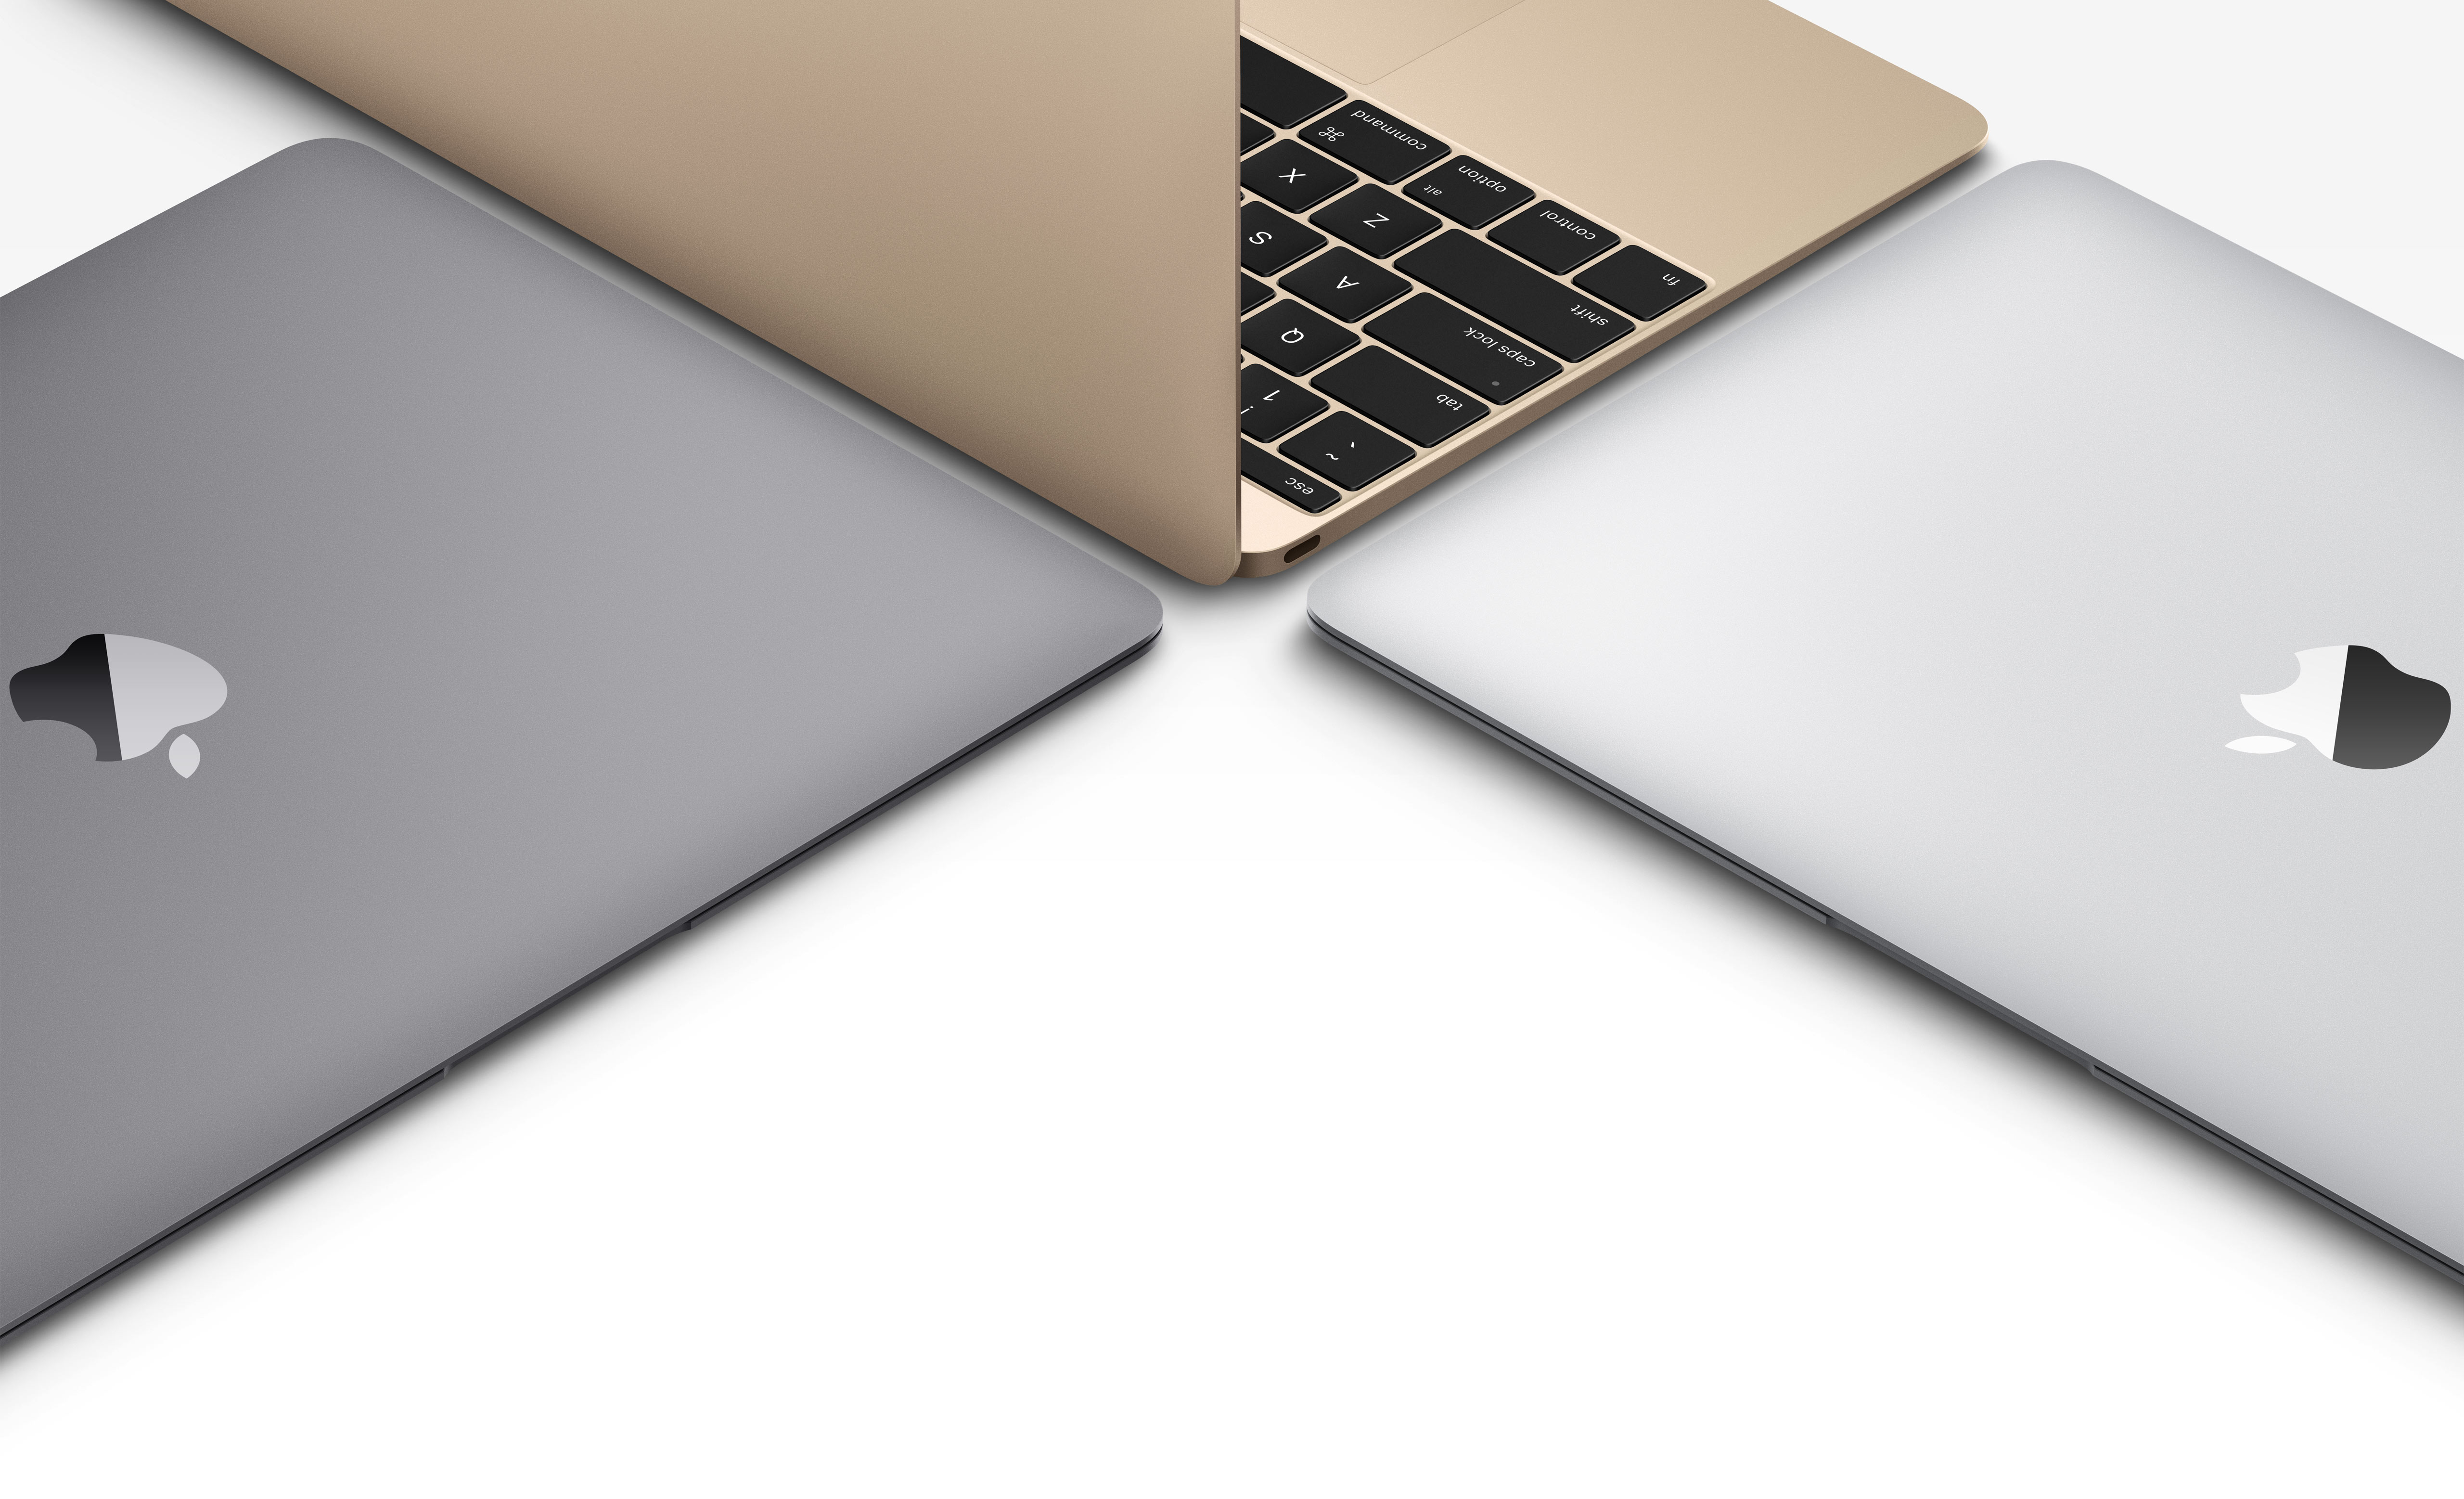 This is the new gold MacBook - The Verge